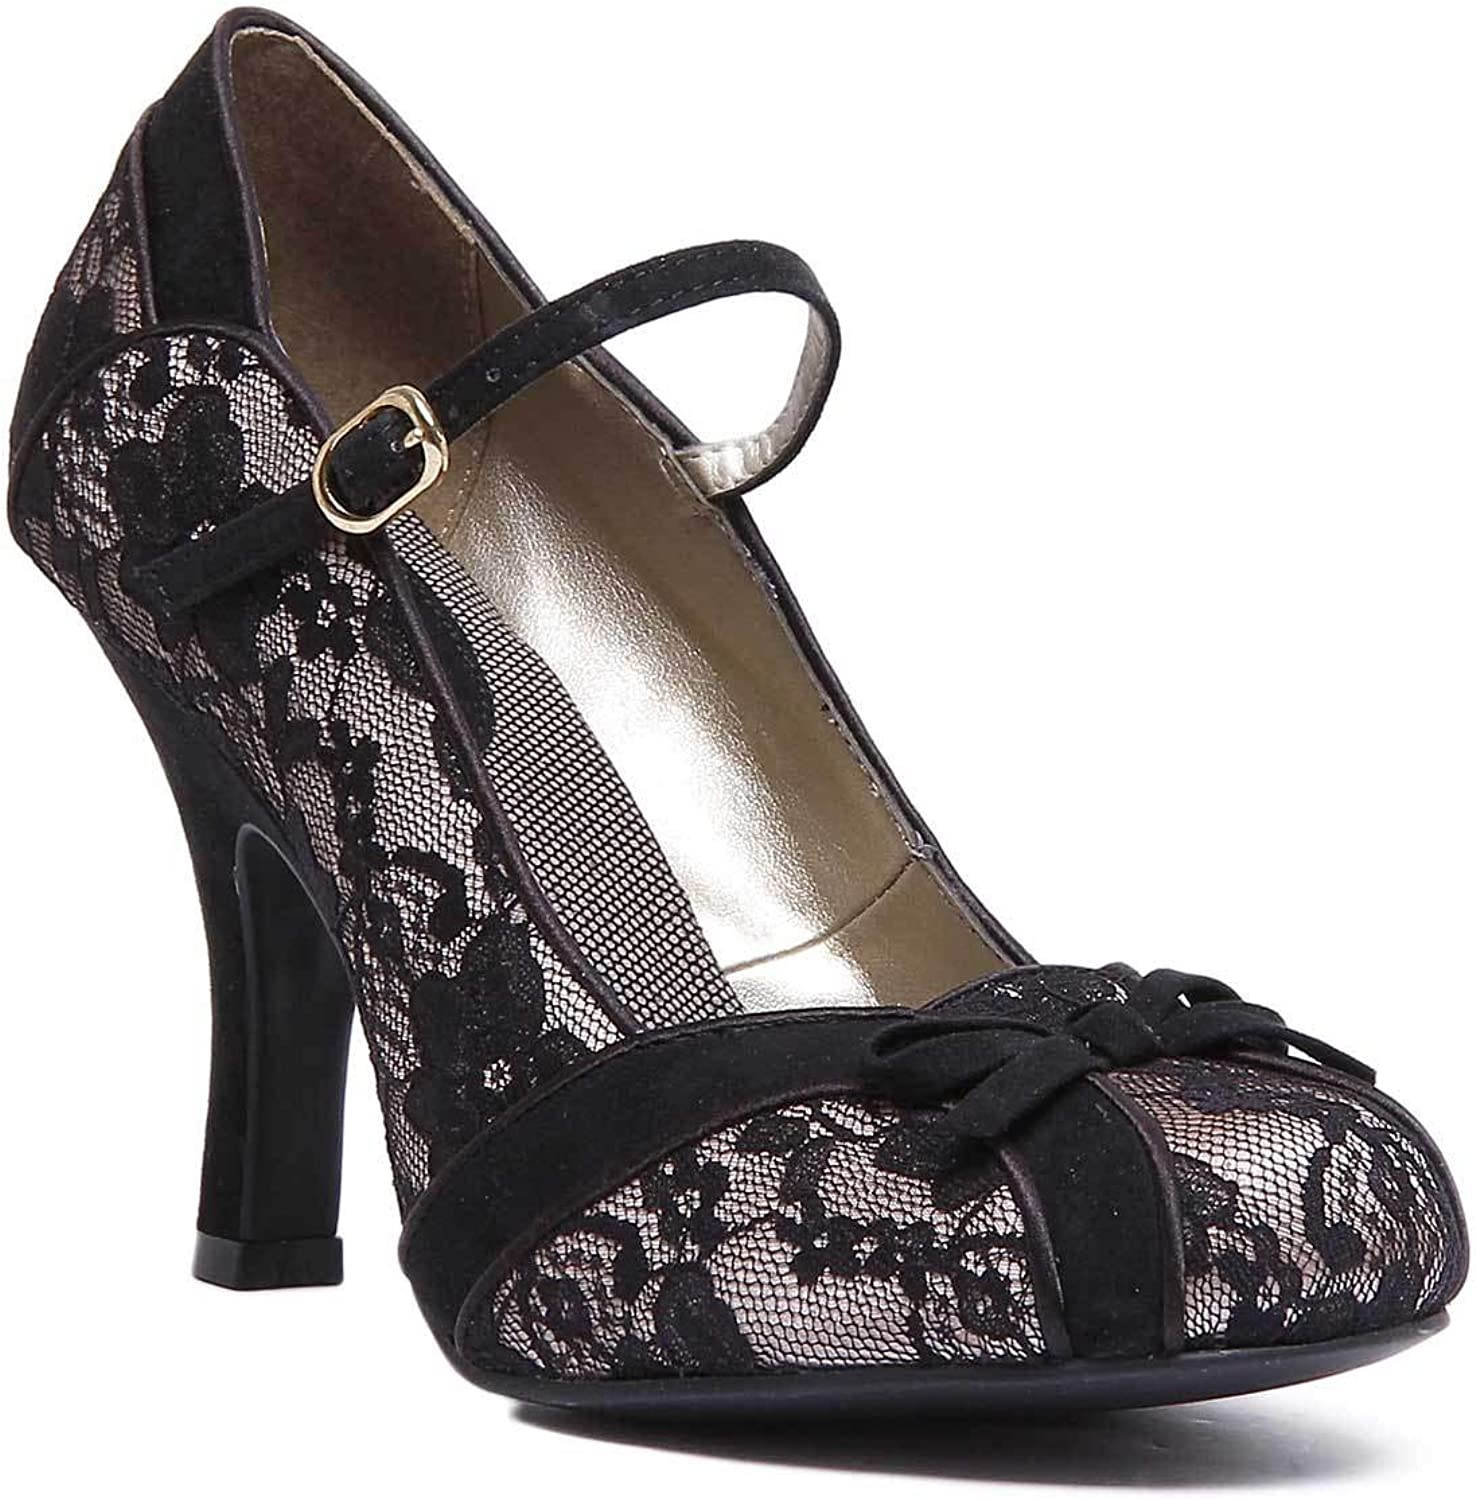 Ruby Shoo Womens Cleo Lace Black high Heel Court shoes Size